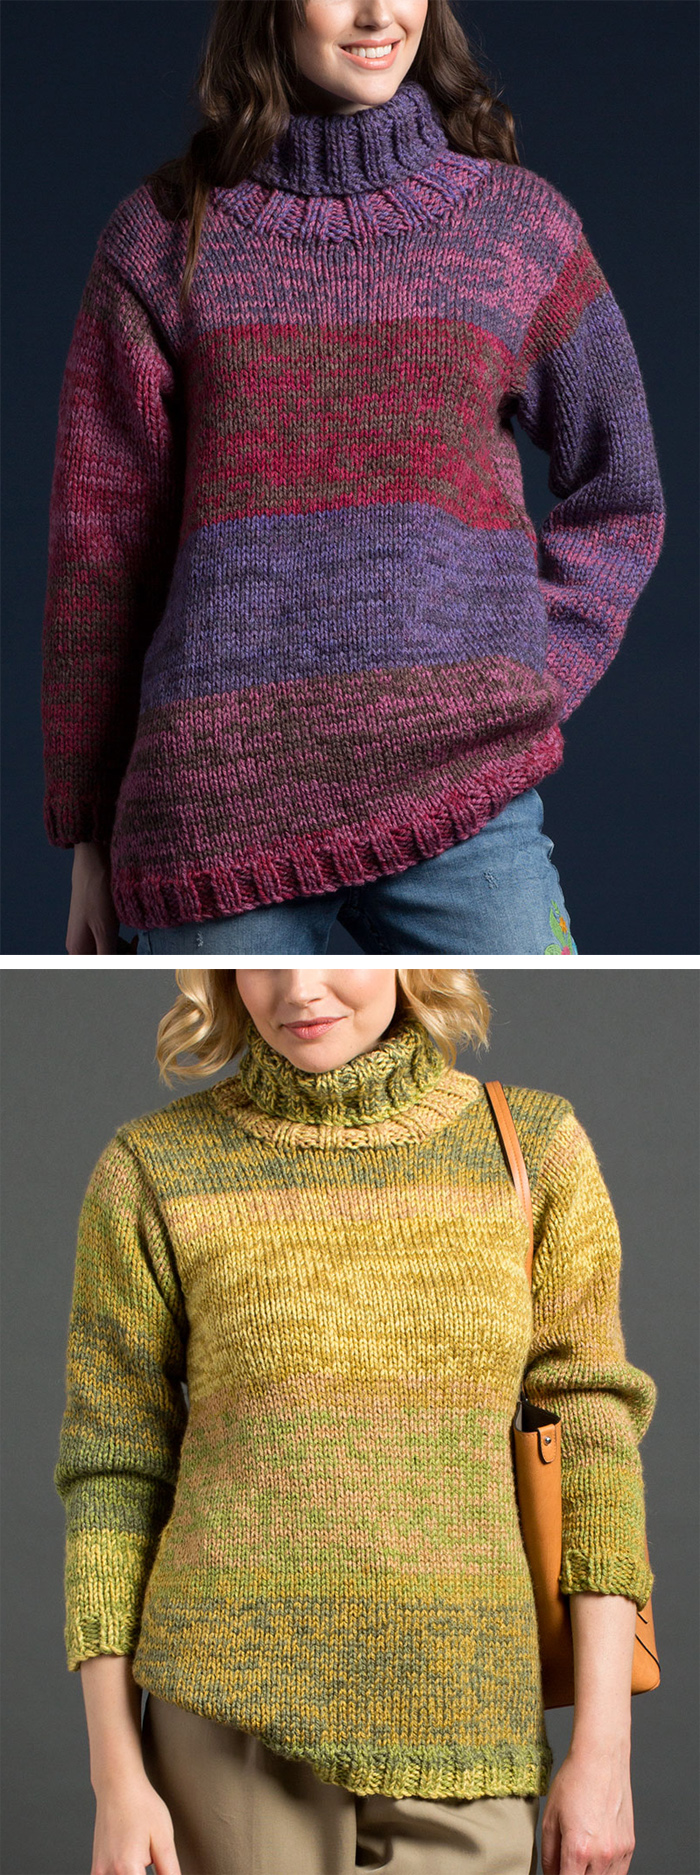 6c582d47a Free Knitting Pattern for Easy On The Double Pullover